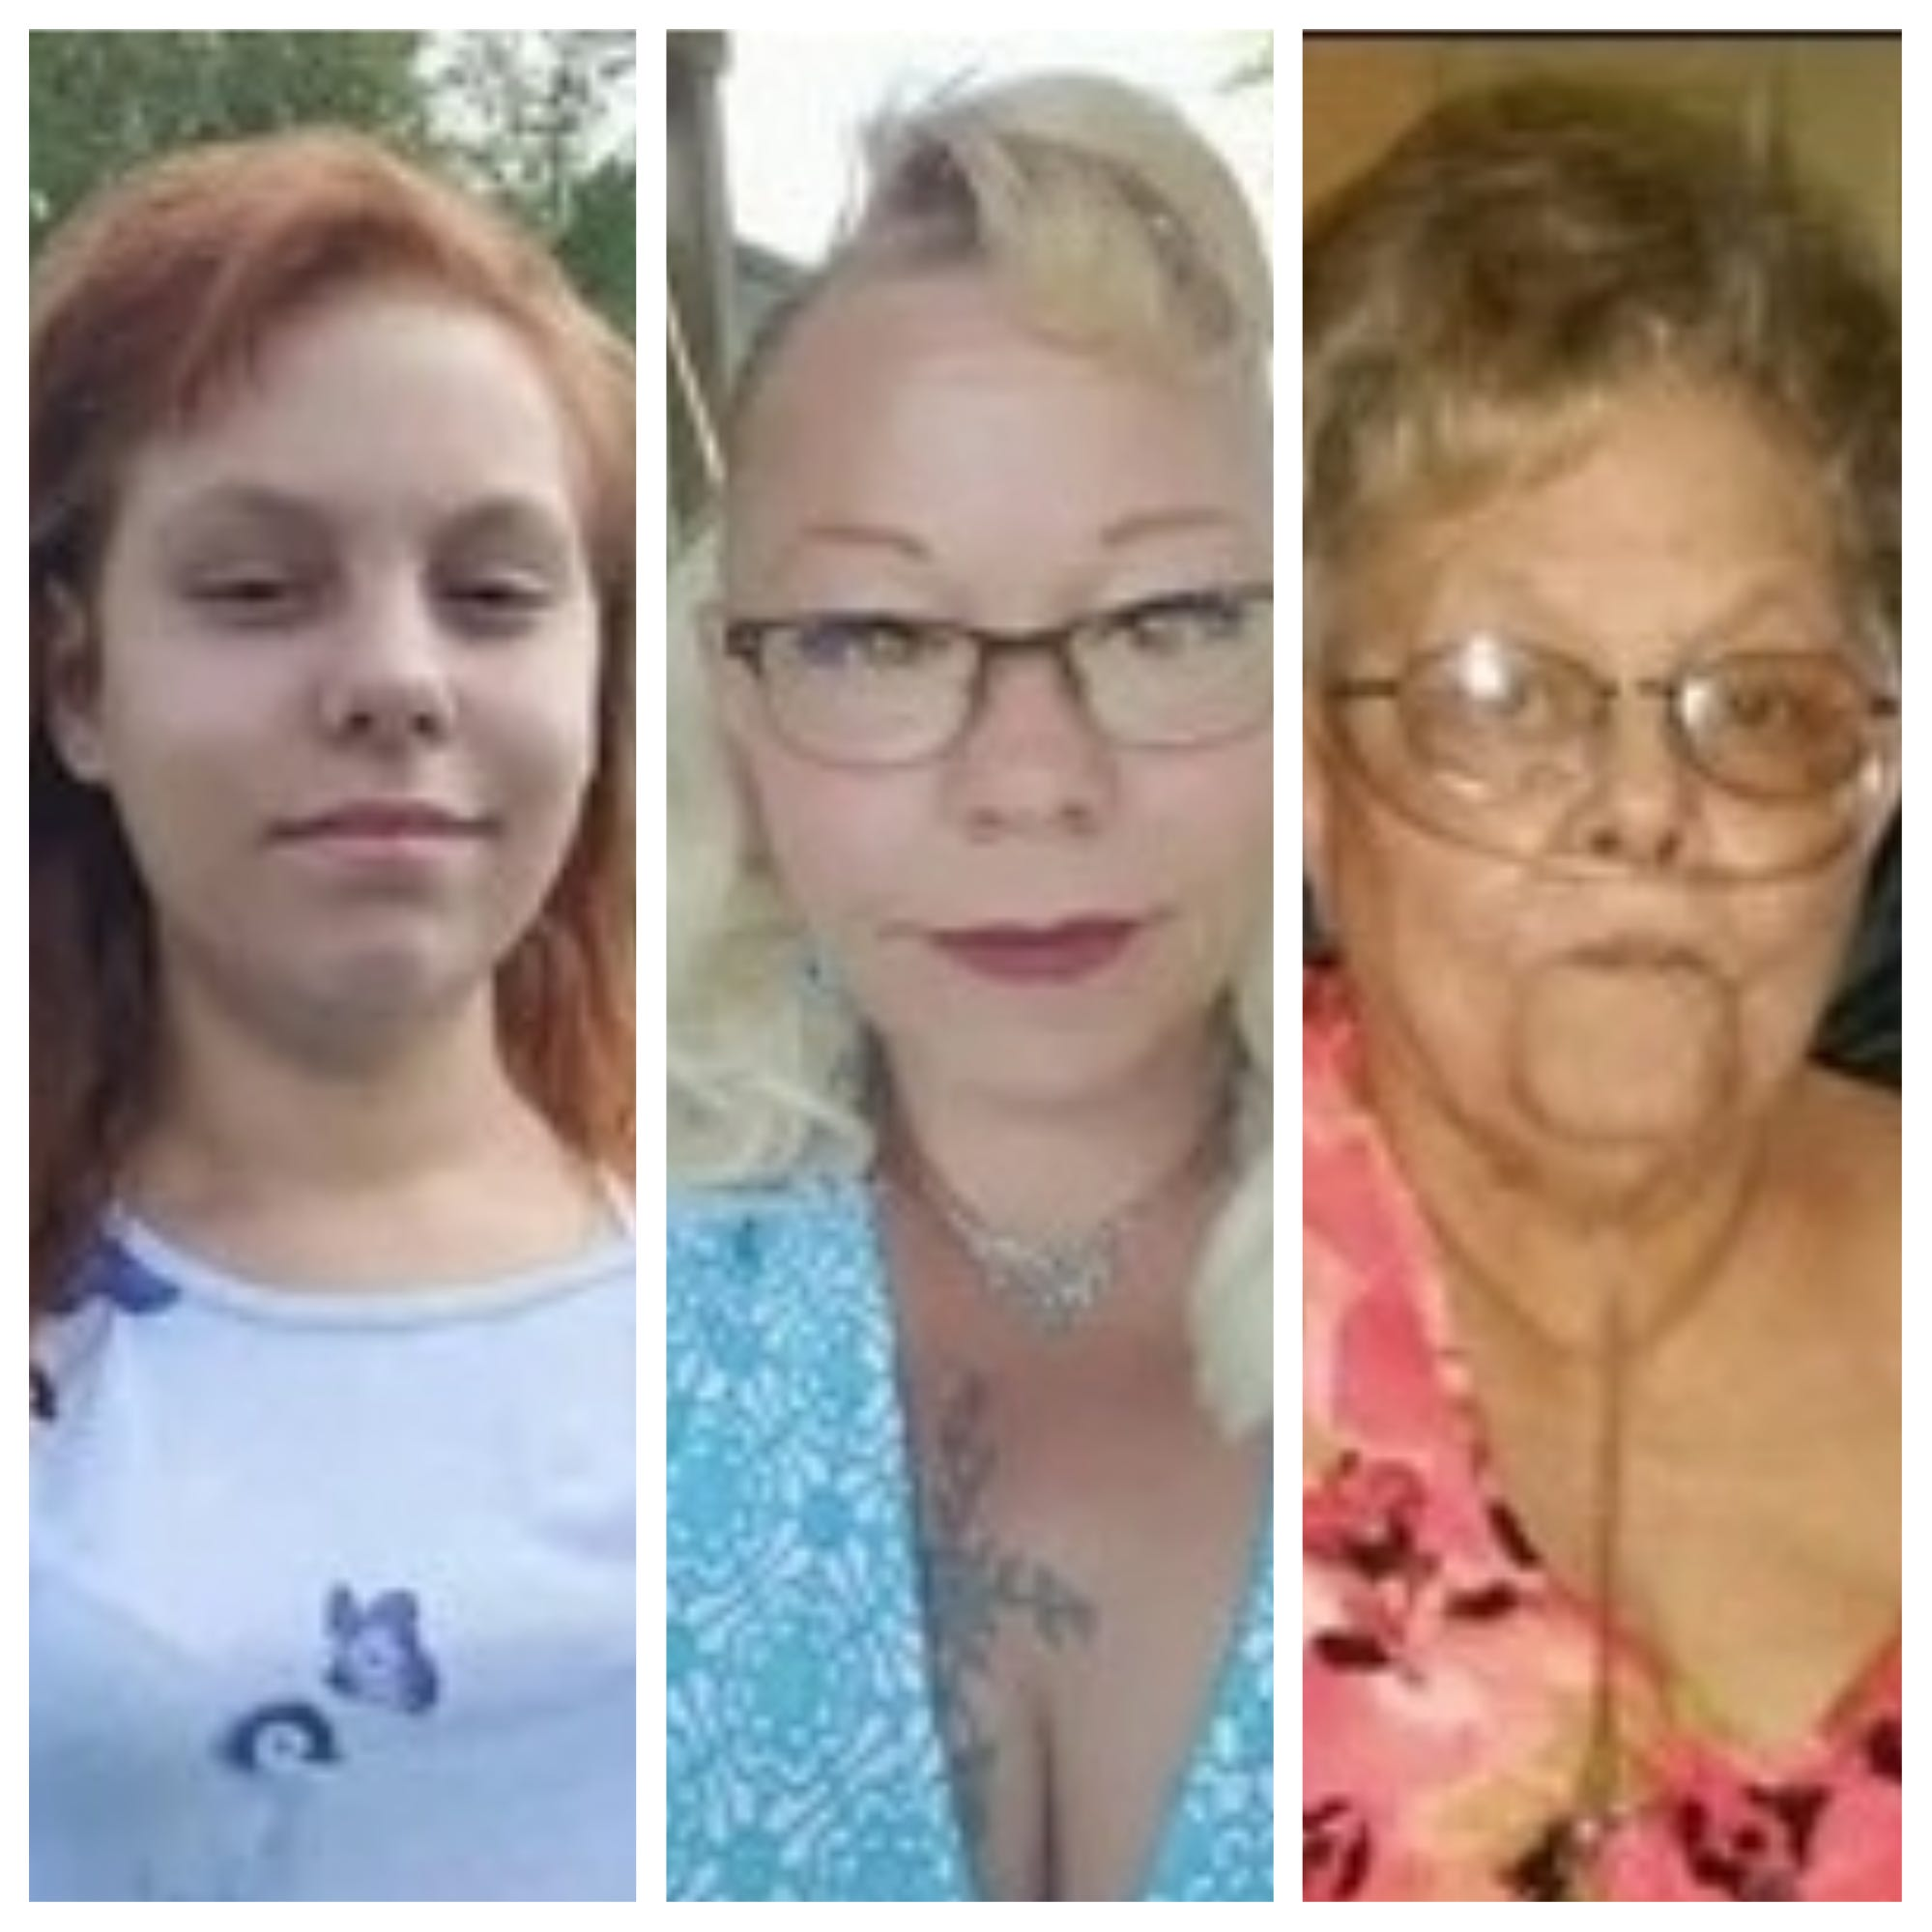 Sumner County slayings: Funeral services announced for Nuckols, McGlothlin-Pee family